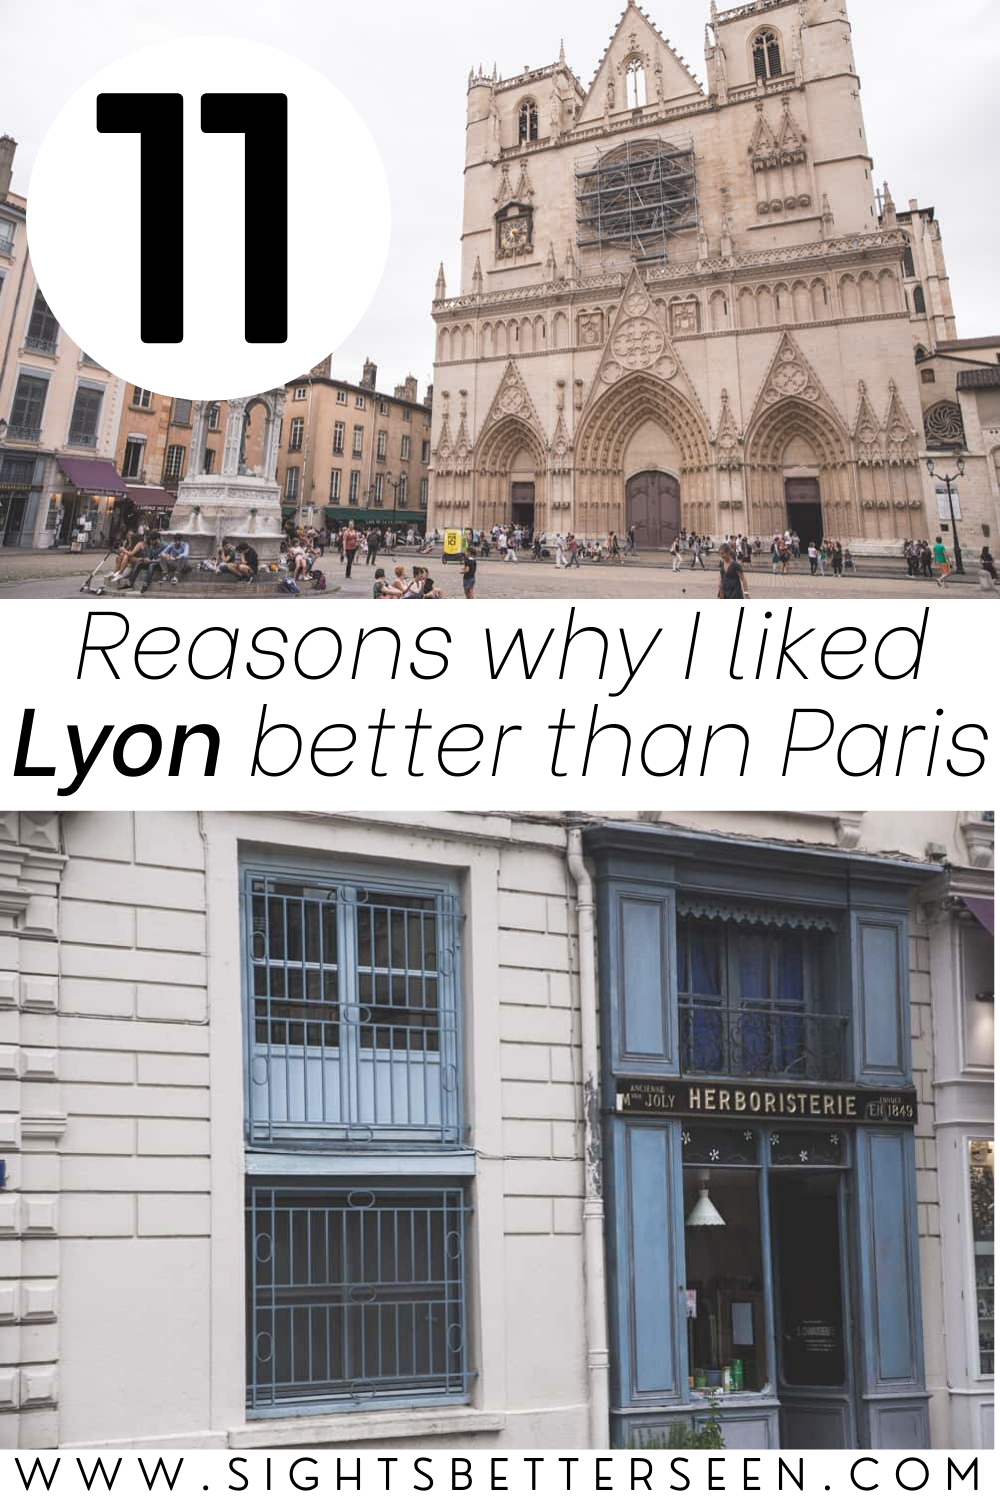 Beautiful buildings and squares in Lyon, France